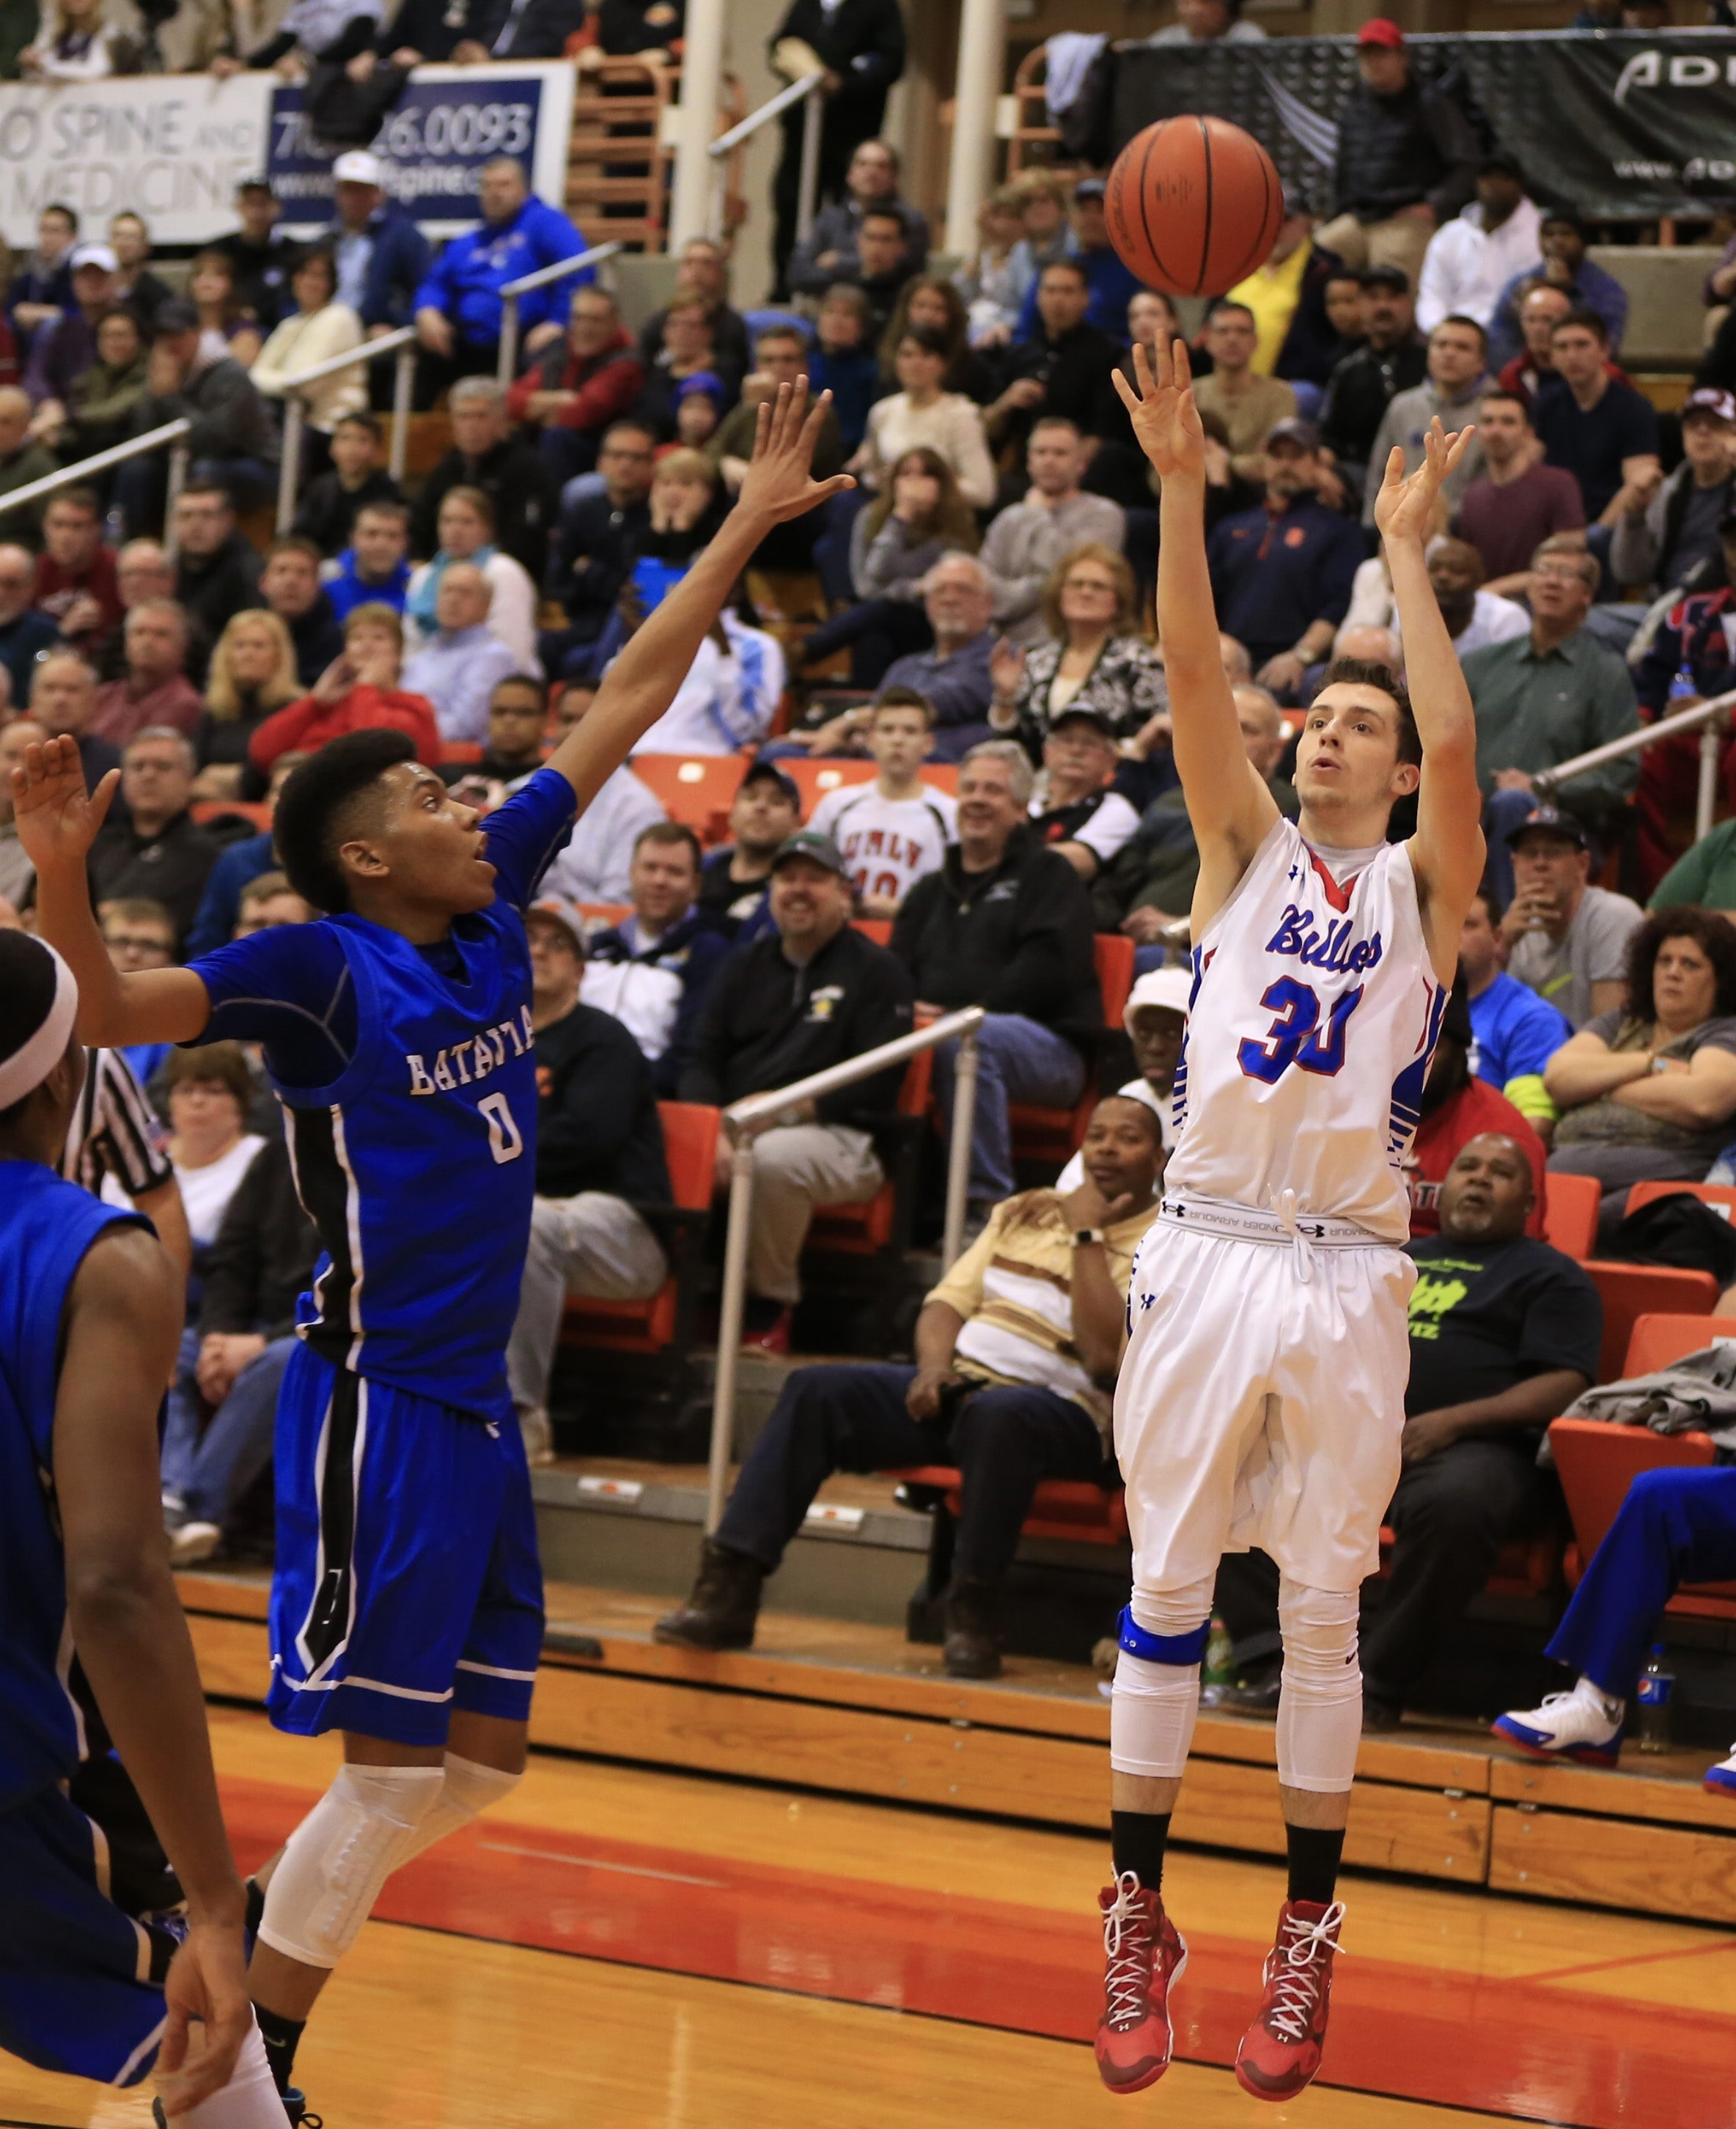 Williamsville South's Jordan Buell releases the shot that gave the Billies a 53-51 victory over Batavia on Saturday night.